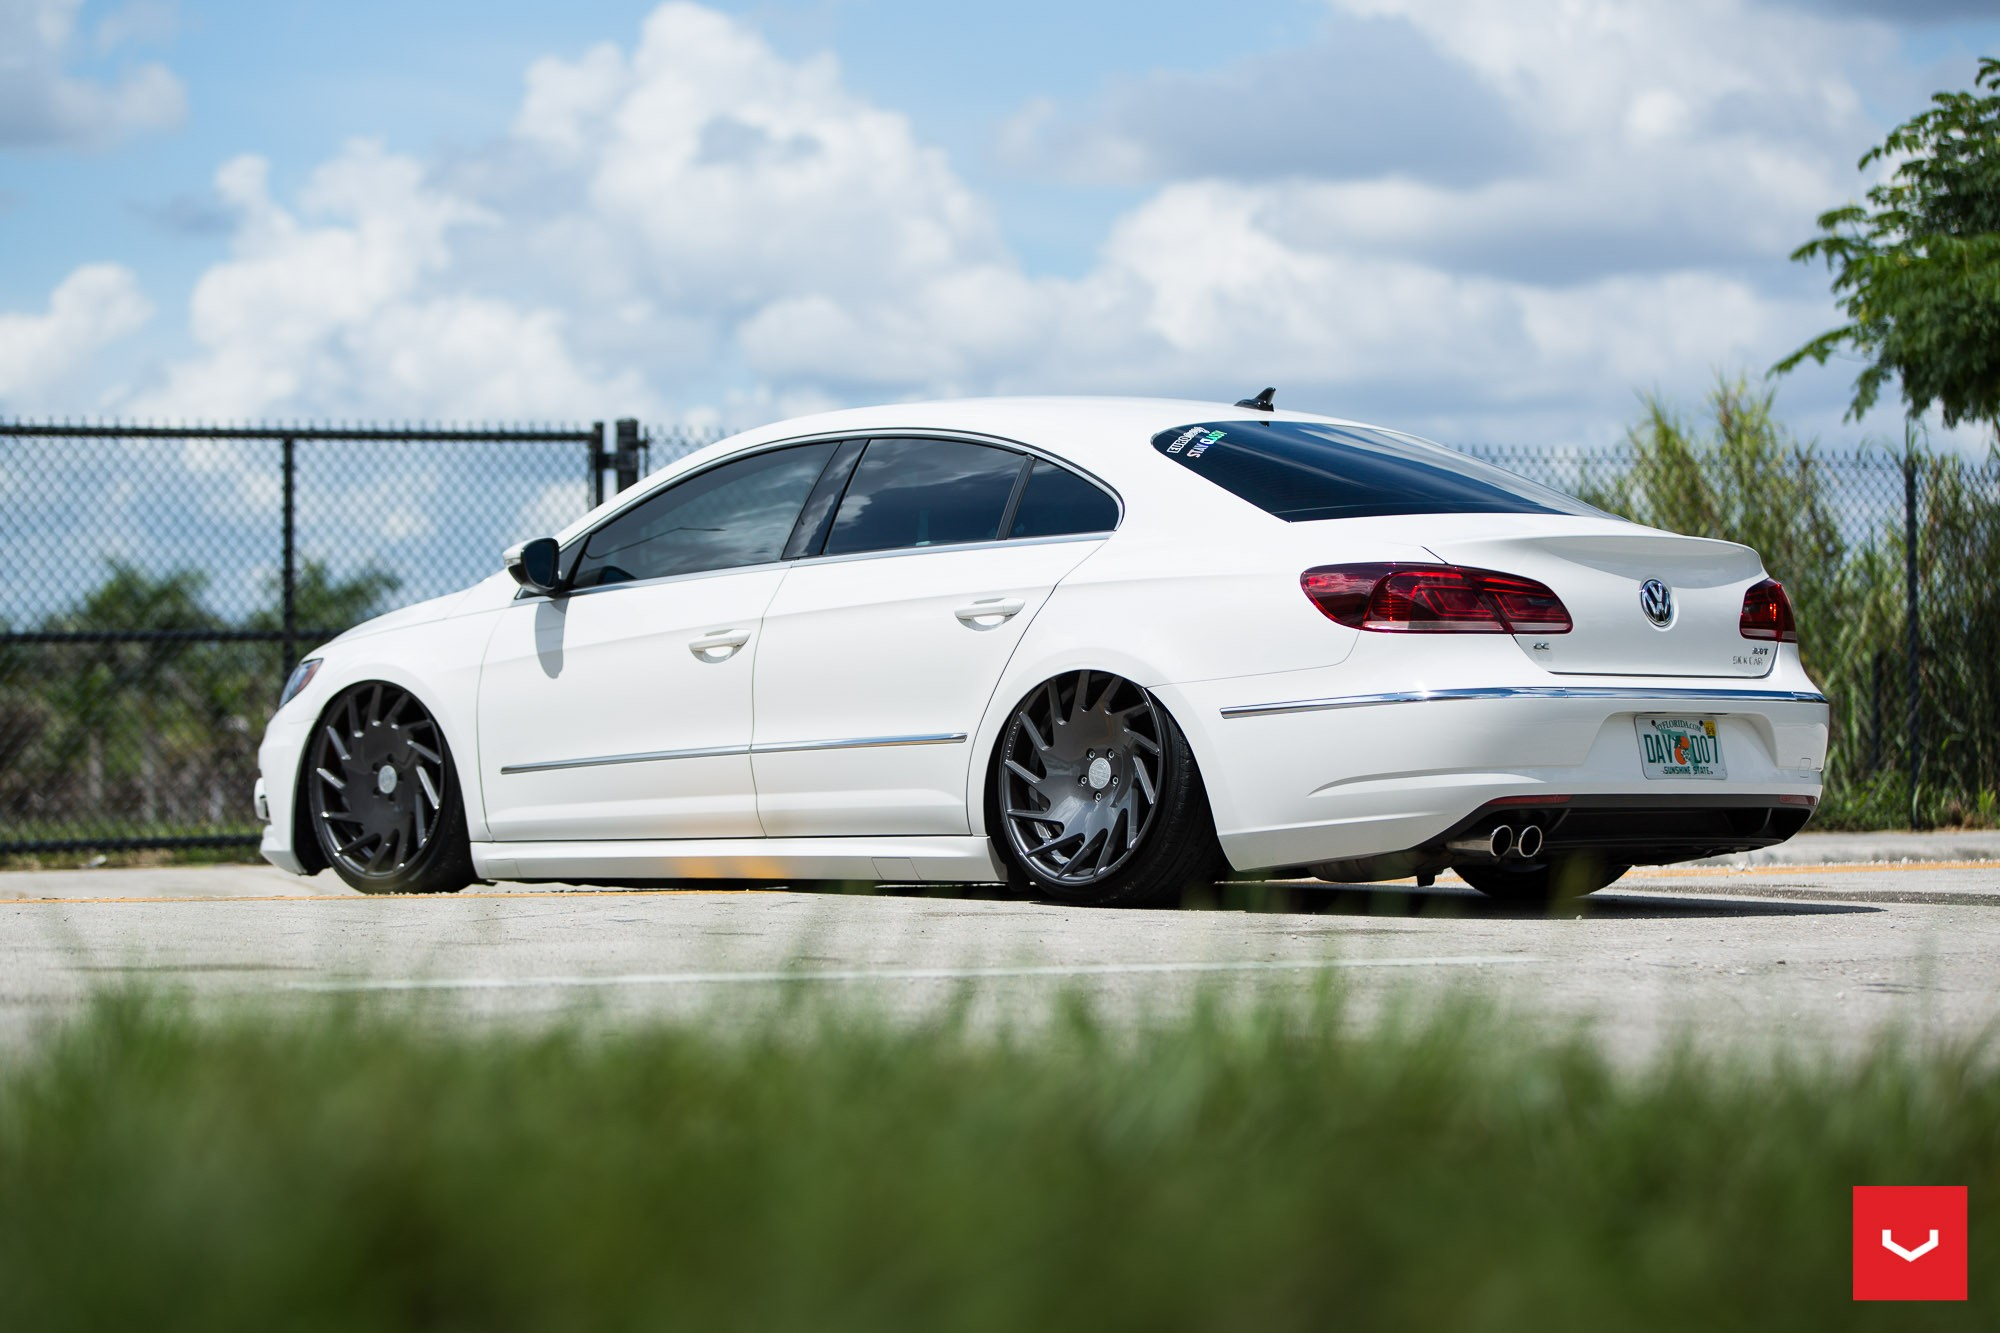 Volkswagen CC R-Line Gets Stanced on Vossen VLE-1 Wheels - autoevolution